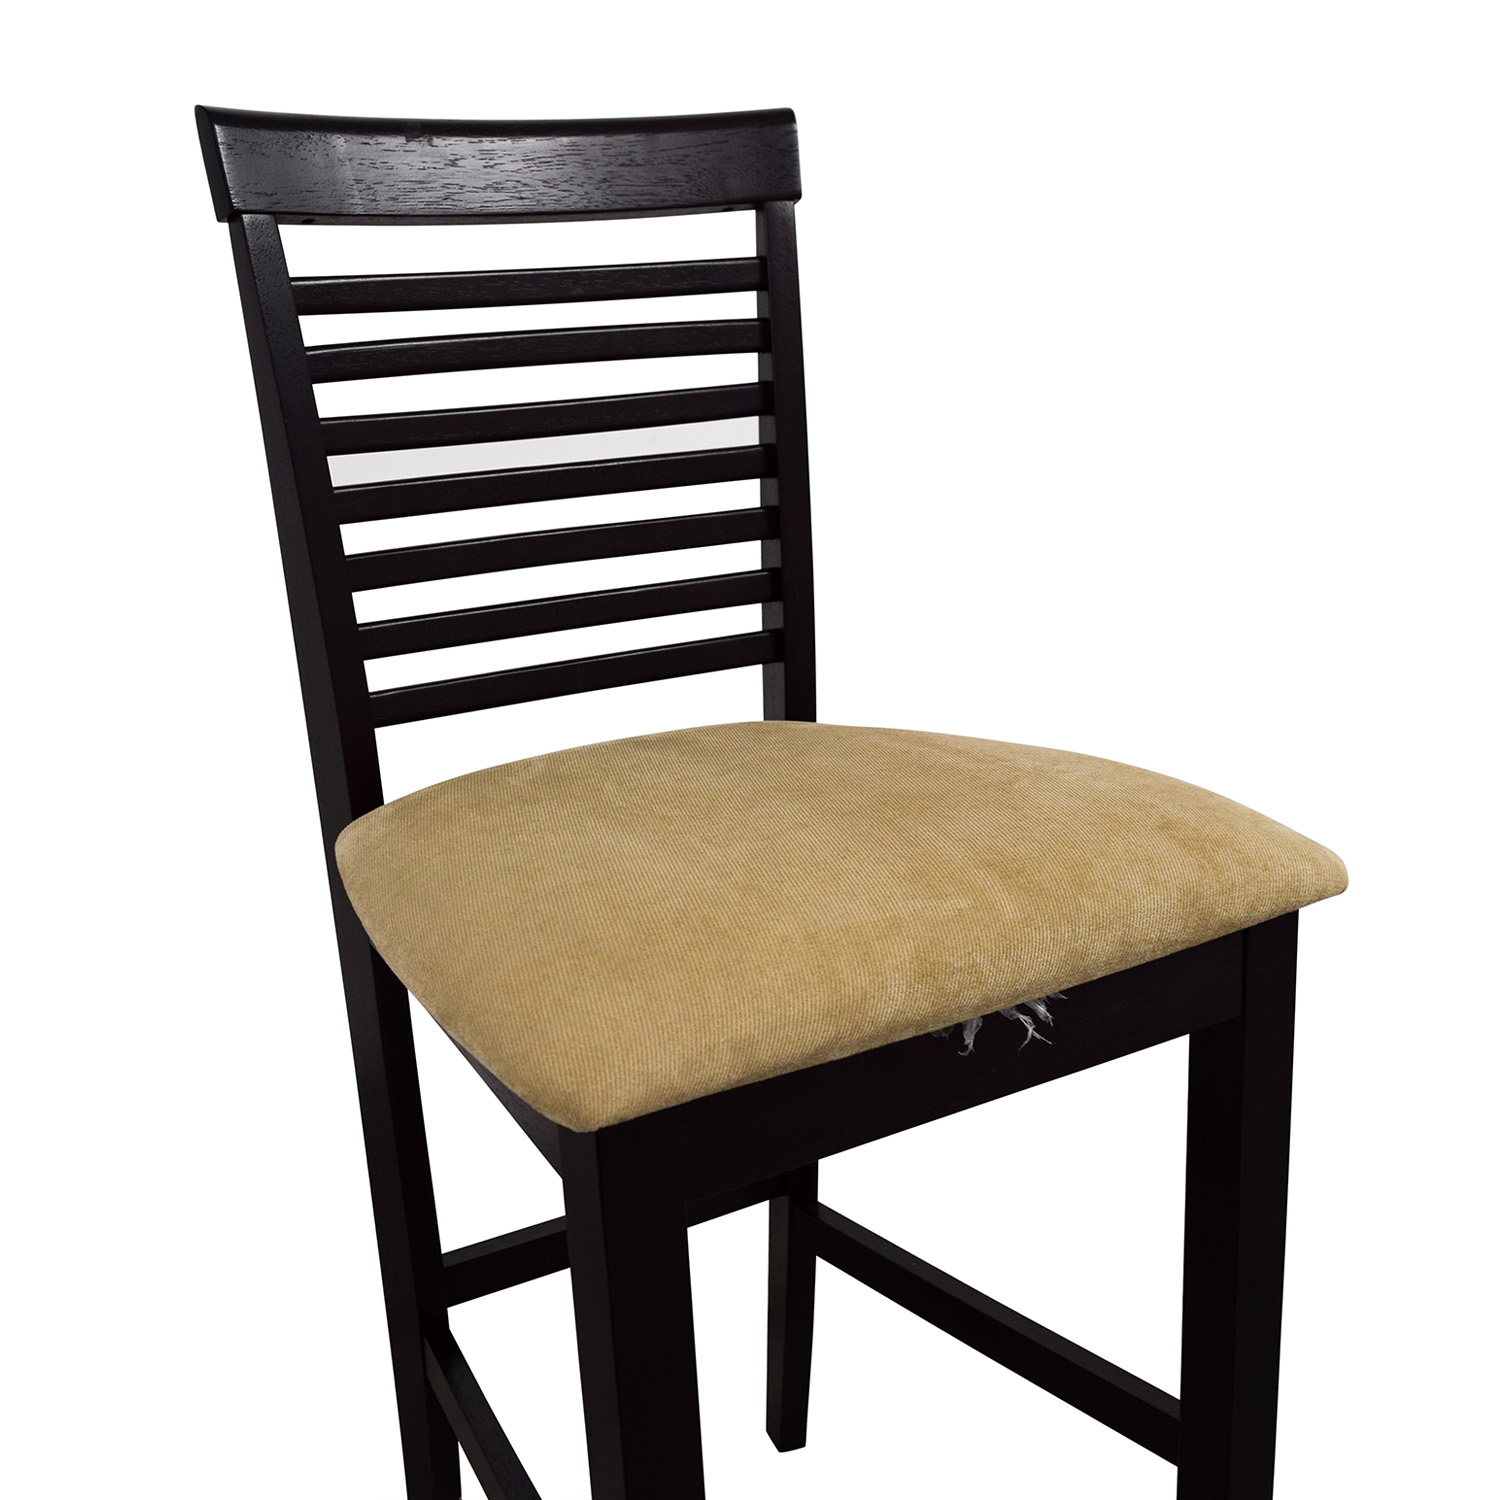 Off tan upholstered counter bar stool chairs